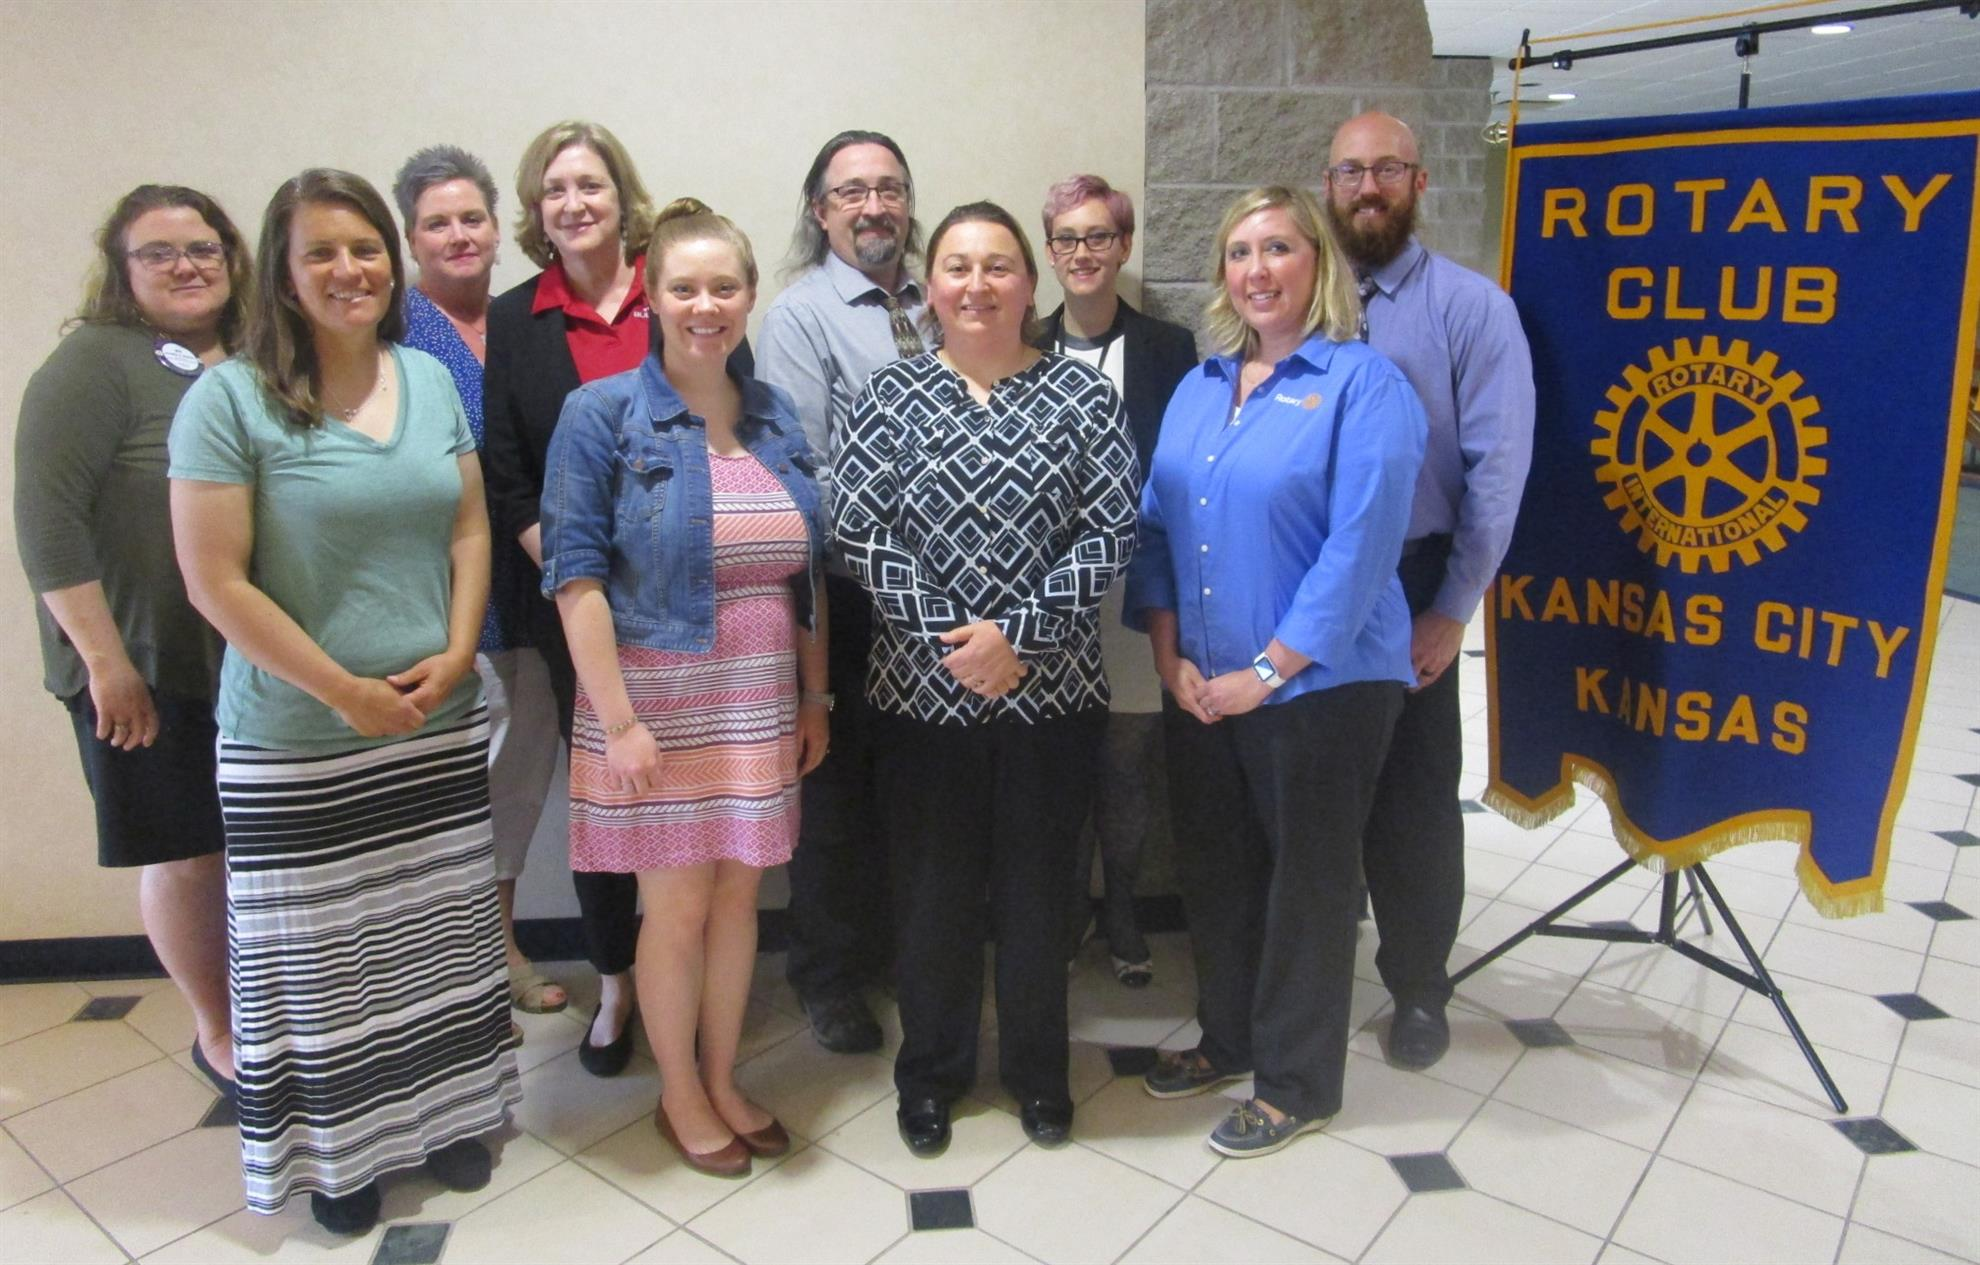 Stories | Rotary Club of Kansas City